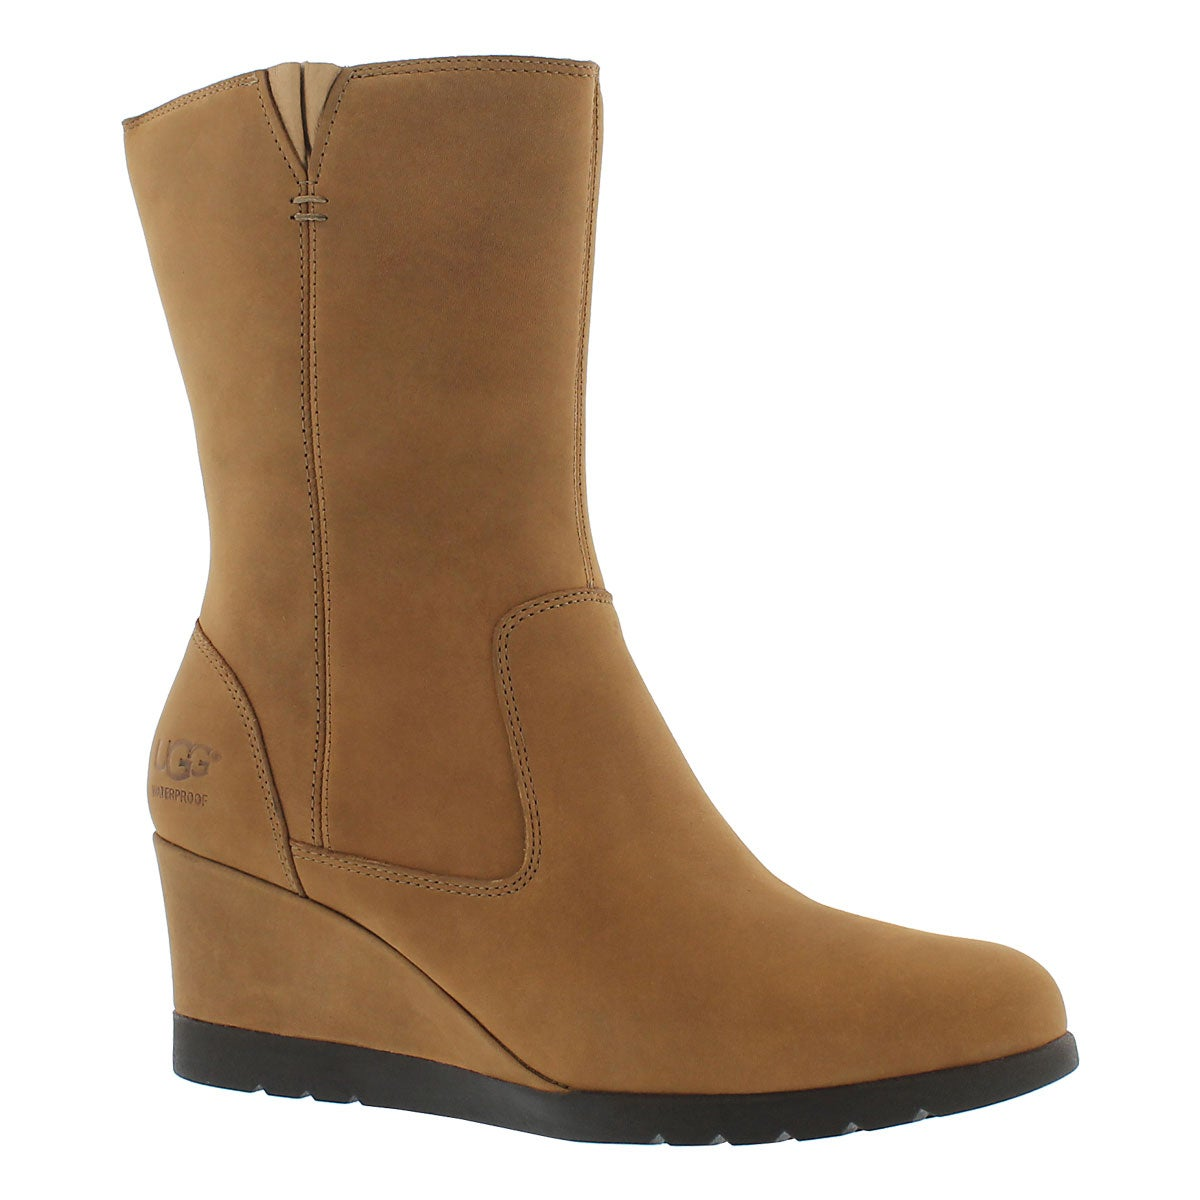 Lds Joely ches wedge dress boot